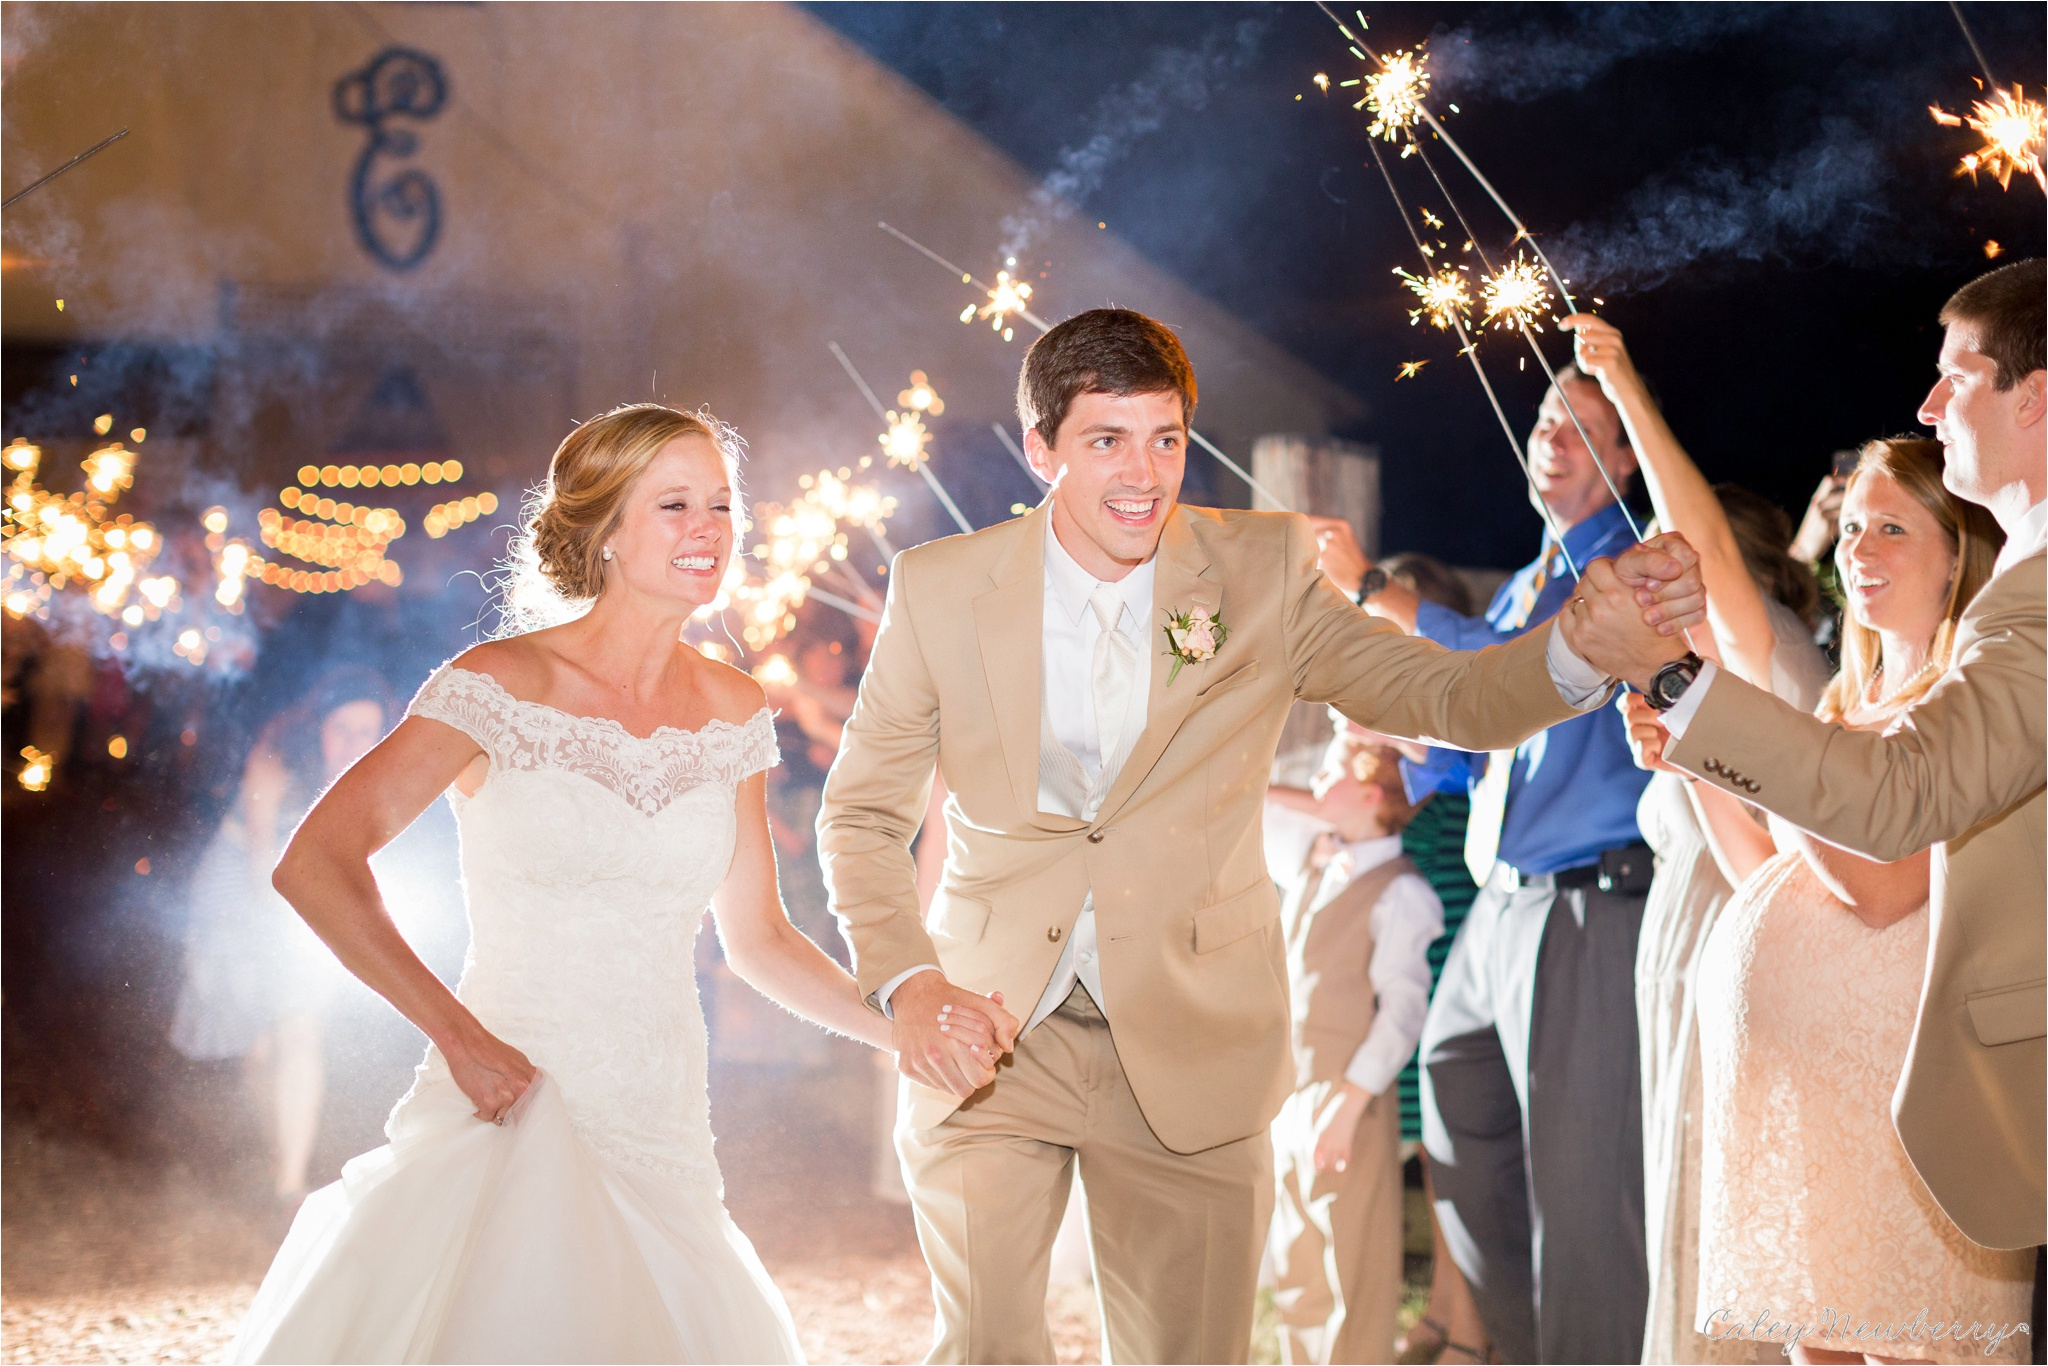 sparkler-exit-wedding-photos.jpg